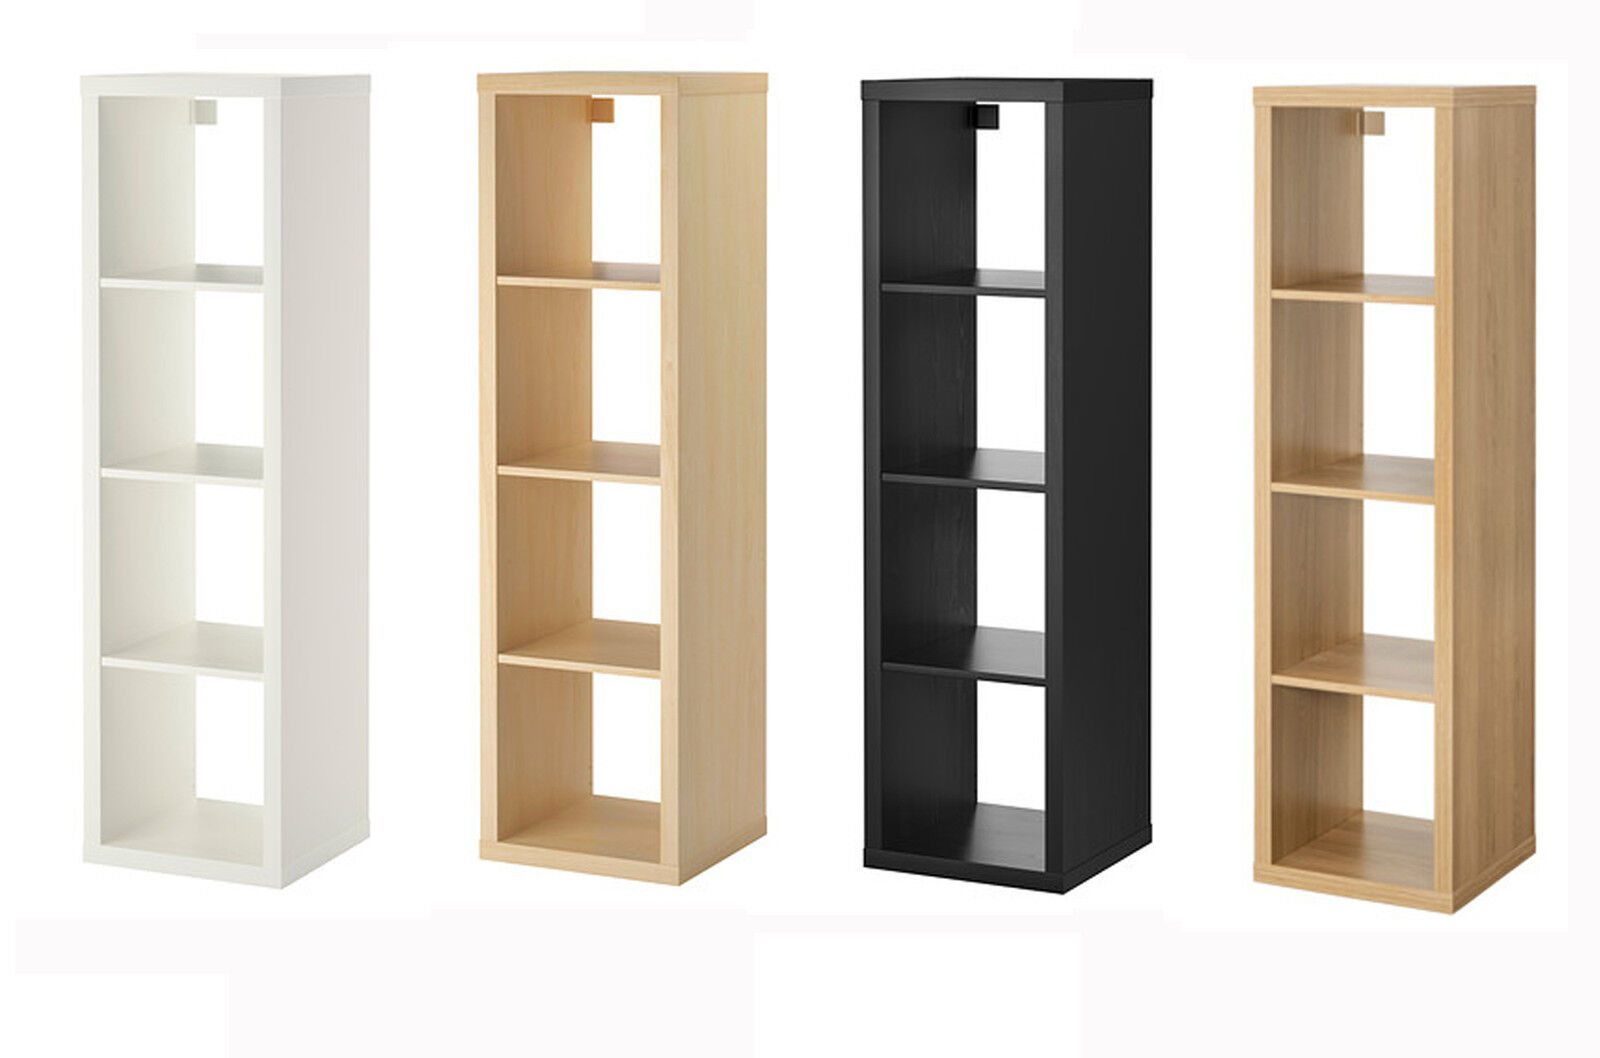 kallax cube storage bookcase shelf book case 4 rectangle rack shelving unit ikea bookcases. Black Bedroom Furniture Sets. Home Design Ideas